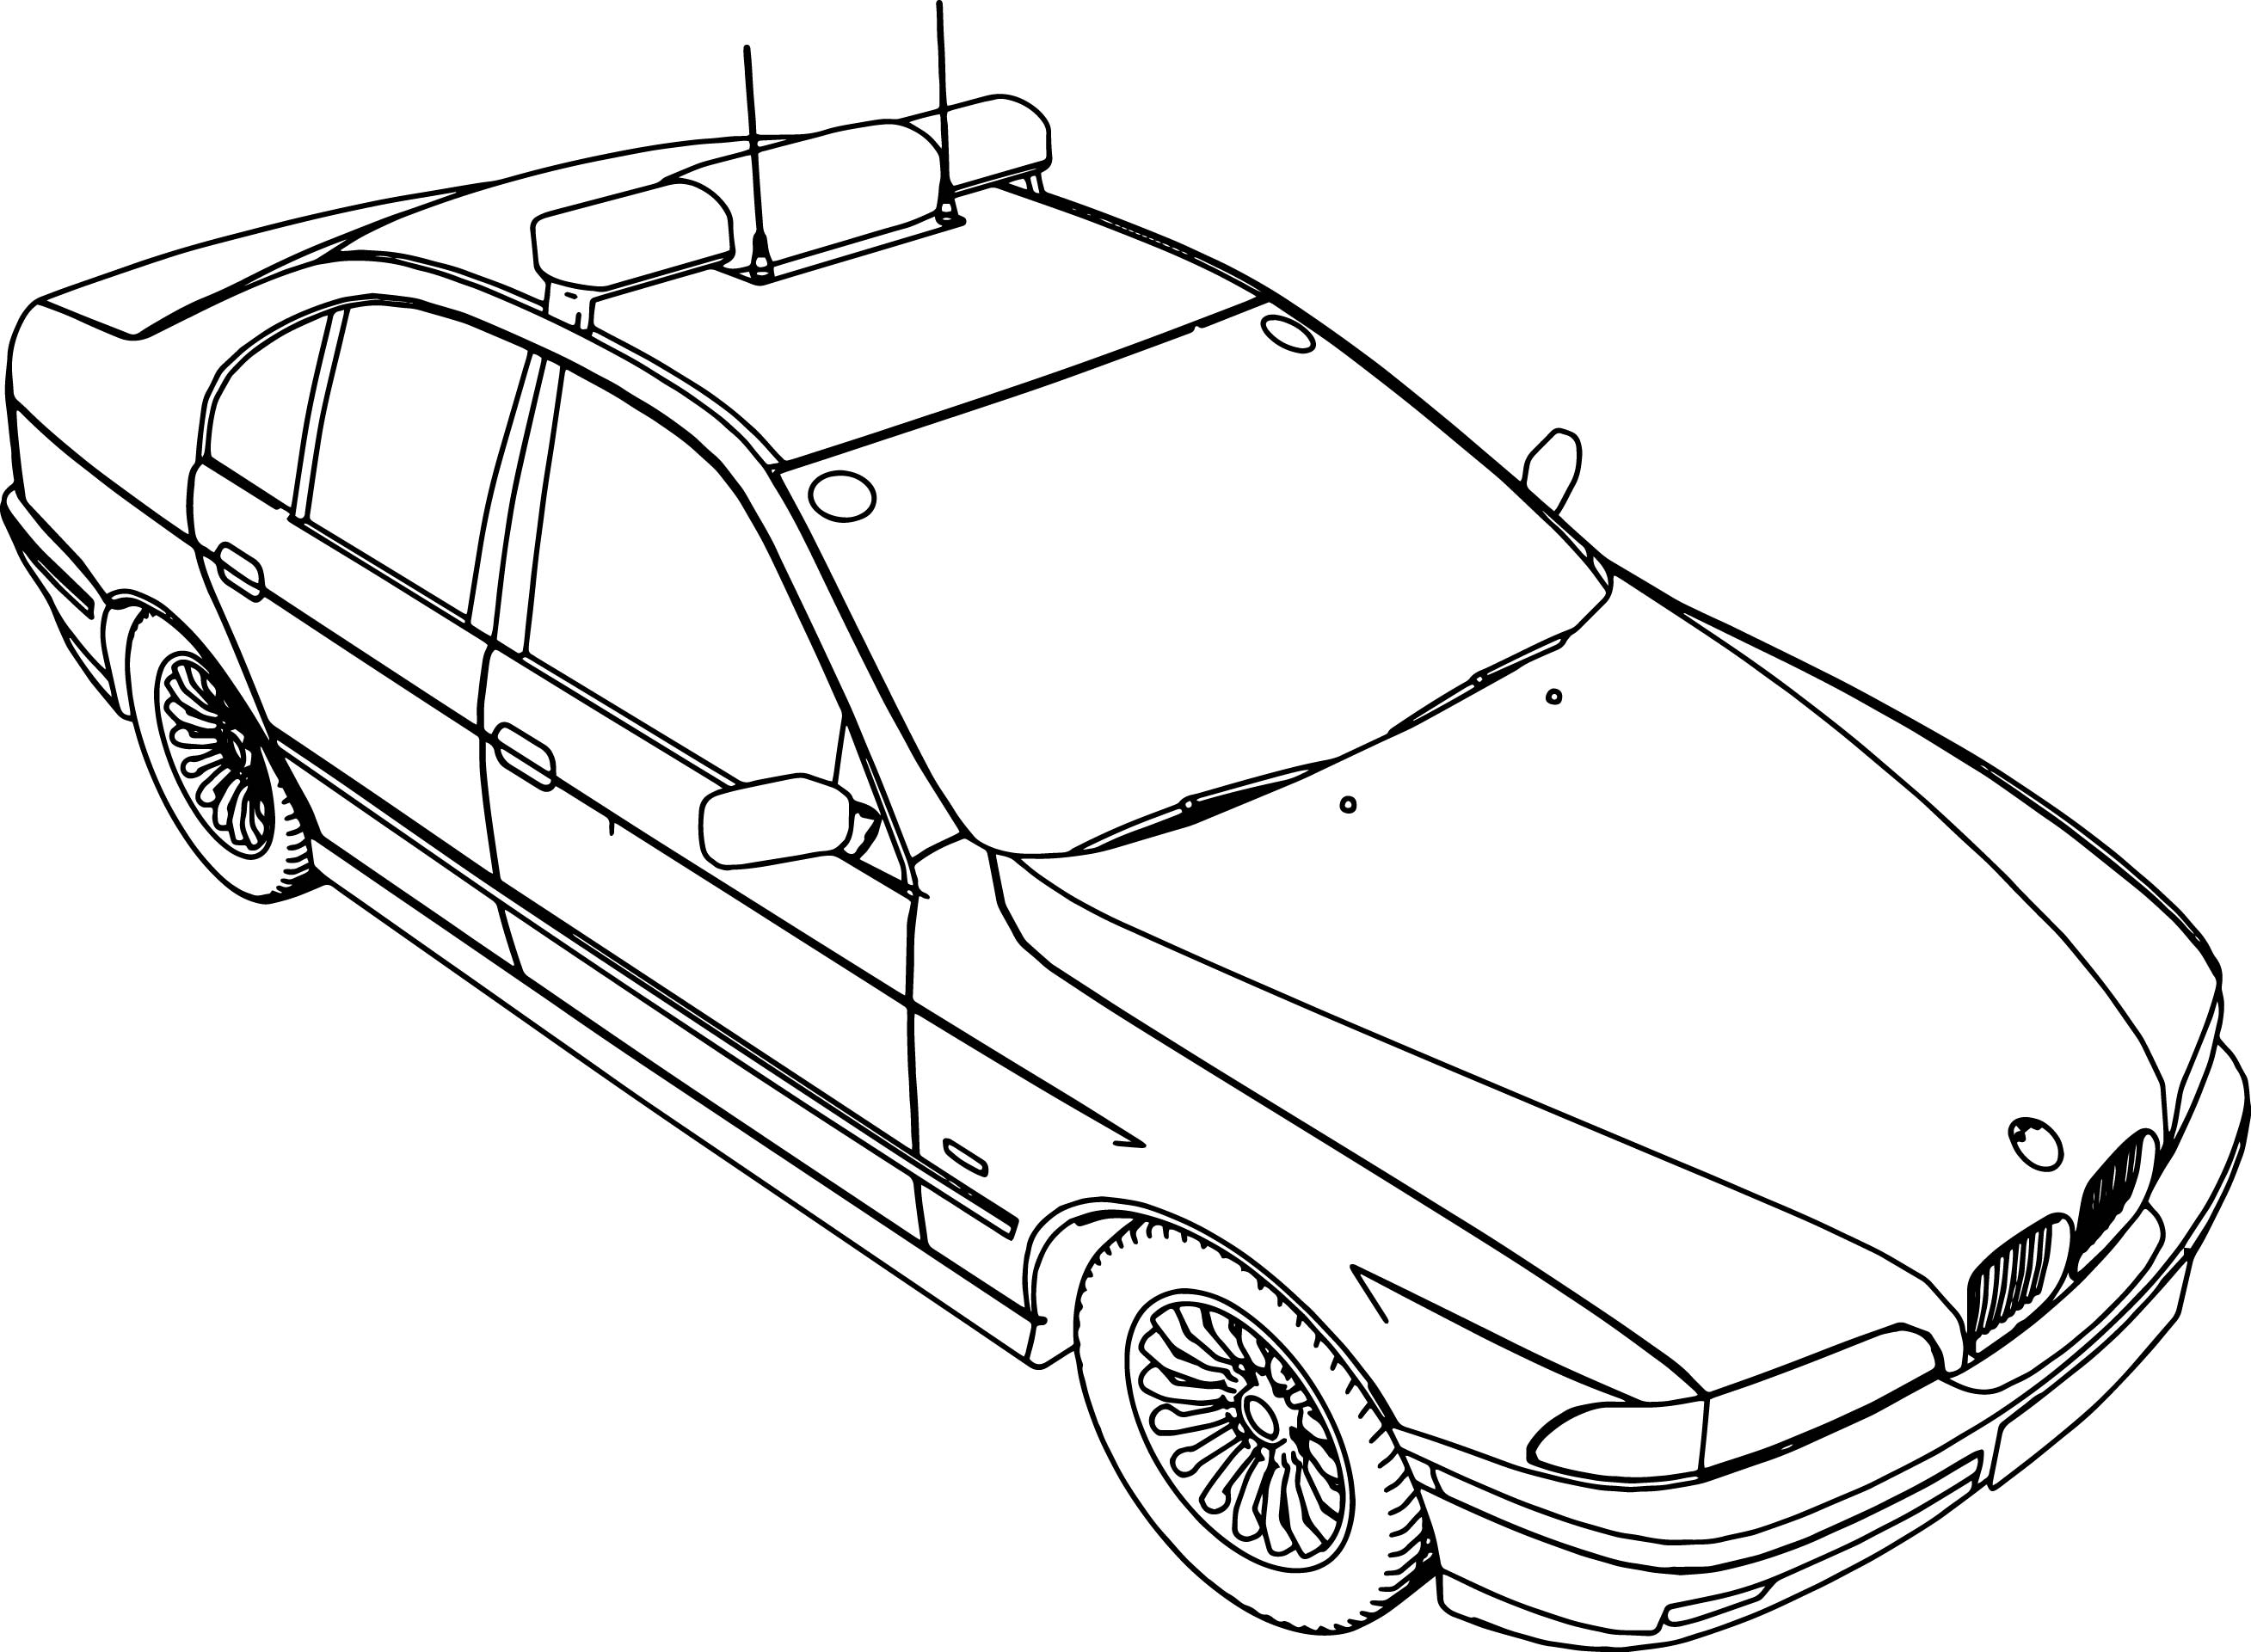 F1 Coloring Pages At Getcolorings